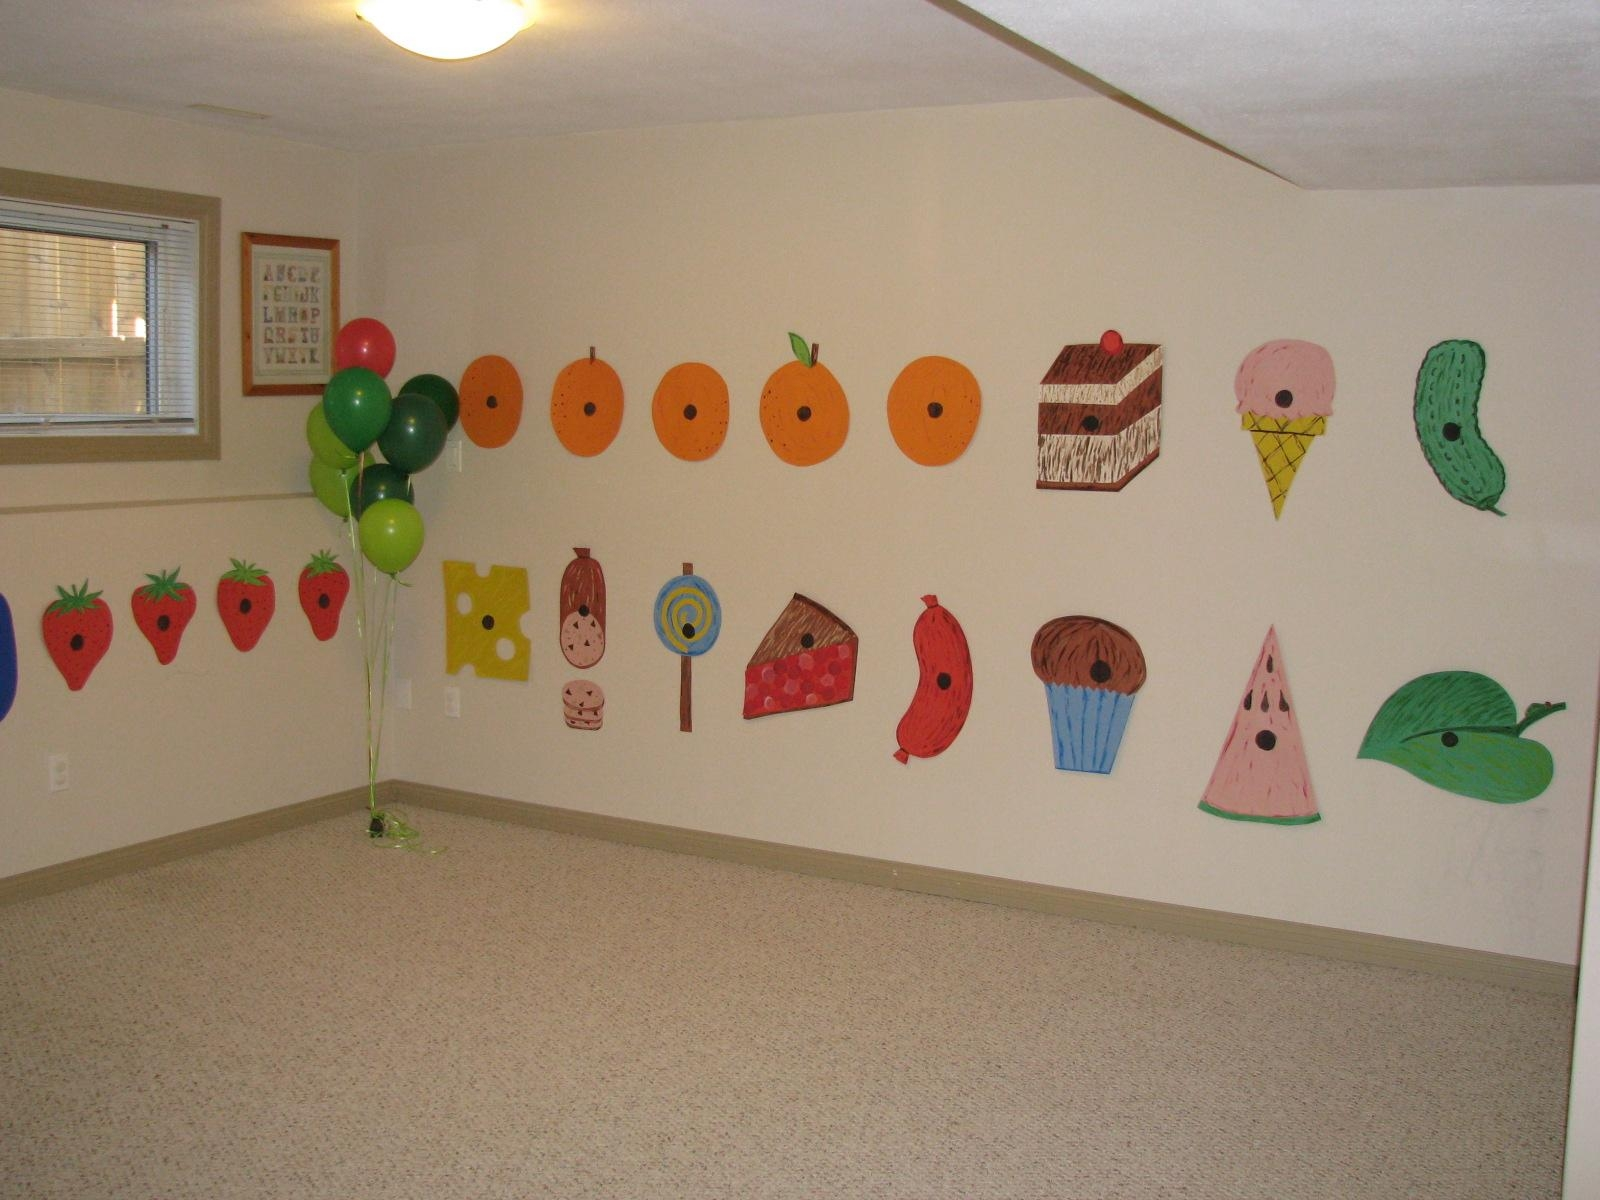 Making Merry Memories: The Very Hungry Caterpillar Party For The Very Hungry Caterpillar Wall Art (Image 11 of 20)